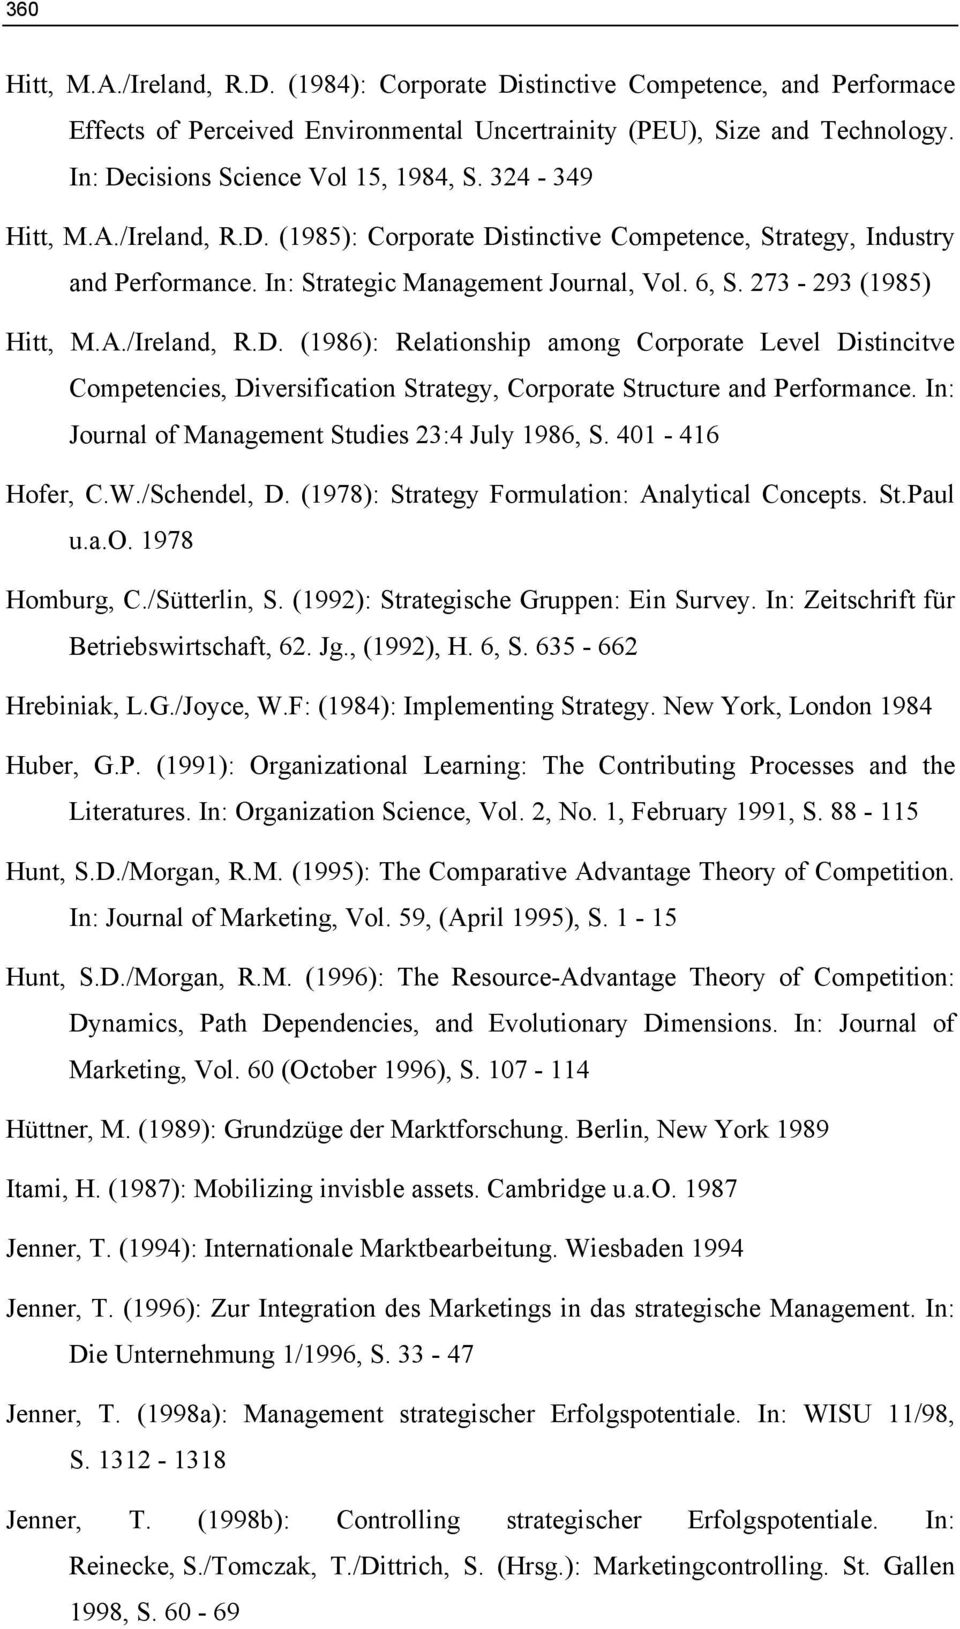 273-293 (1985) Hitt, M.A./Ireland, R.D. (1986): Relationship among Corporate Level Distincitve Competencies, Diversification Strategy, Corporate Structure and Performance.